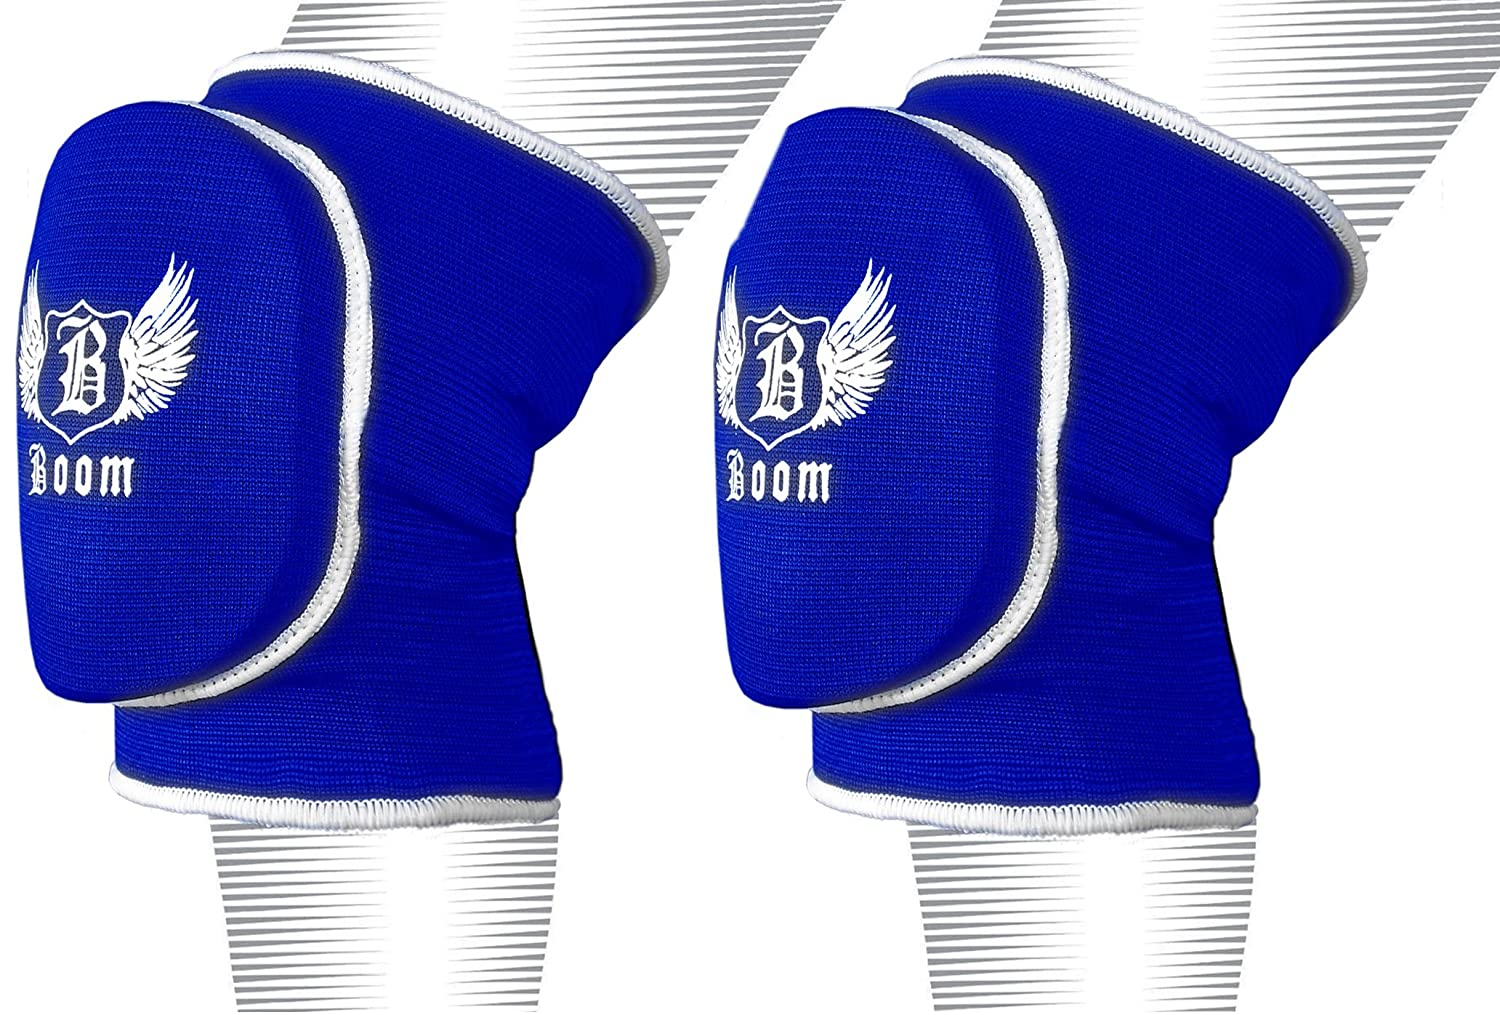 BOOM Prime MMA Volleyball Wrestling Knee Pads Kick Boxing Protector Martial Arts Support Guard Workwear Muay Thai Training BOOM Pro